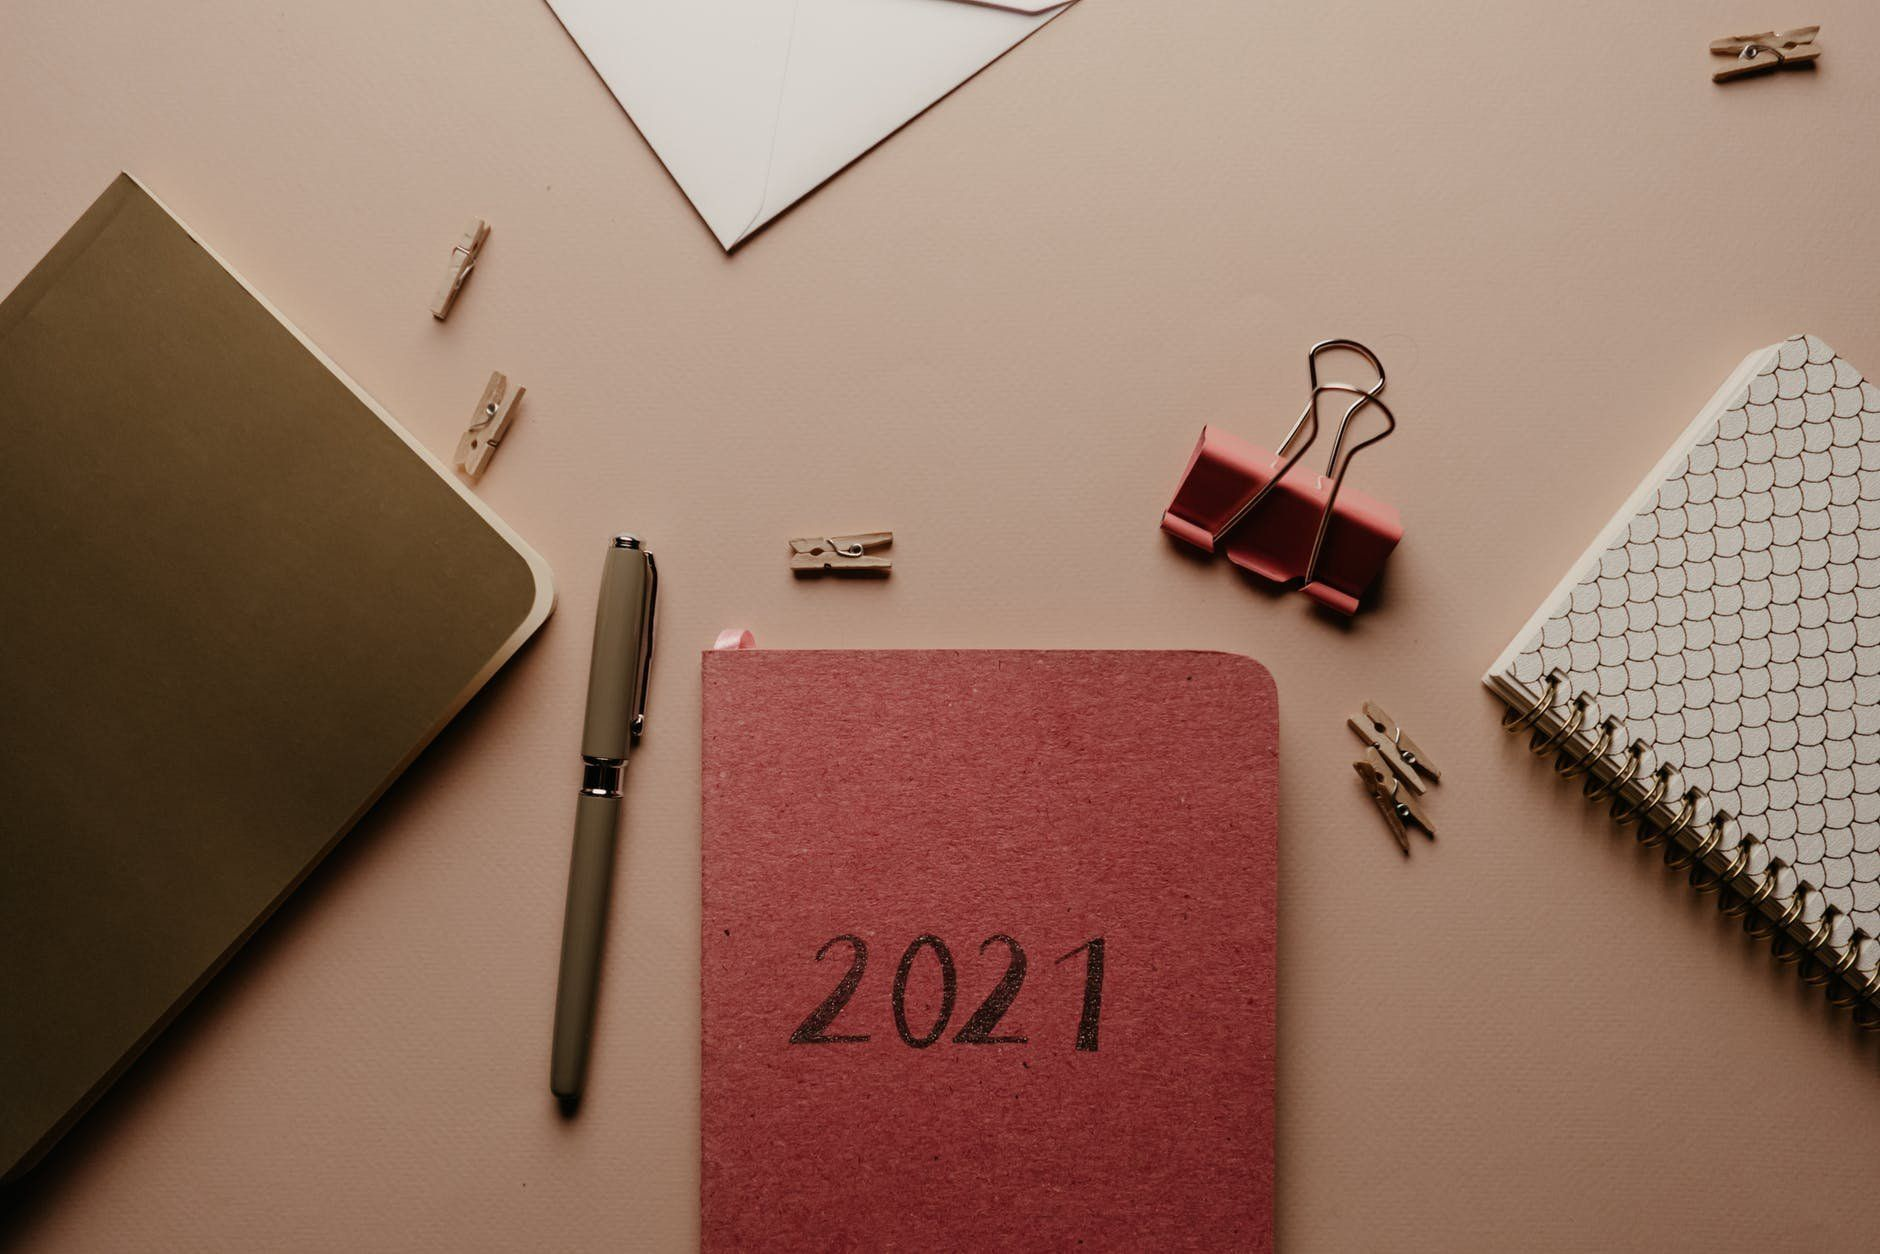 /startups-need-to-make-these-4-new-years-resolutions-1b4731zv feature image